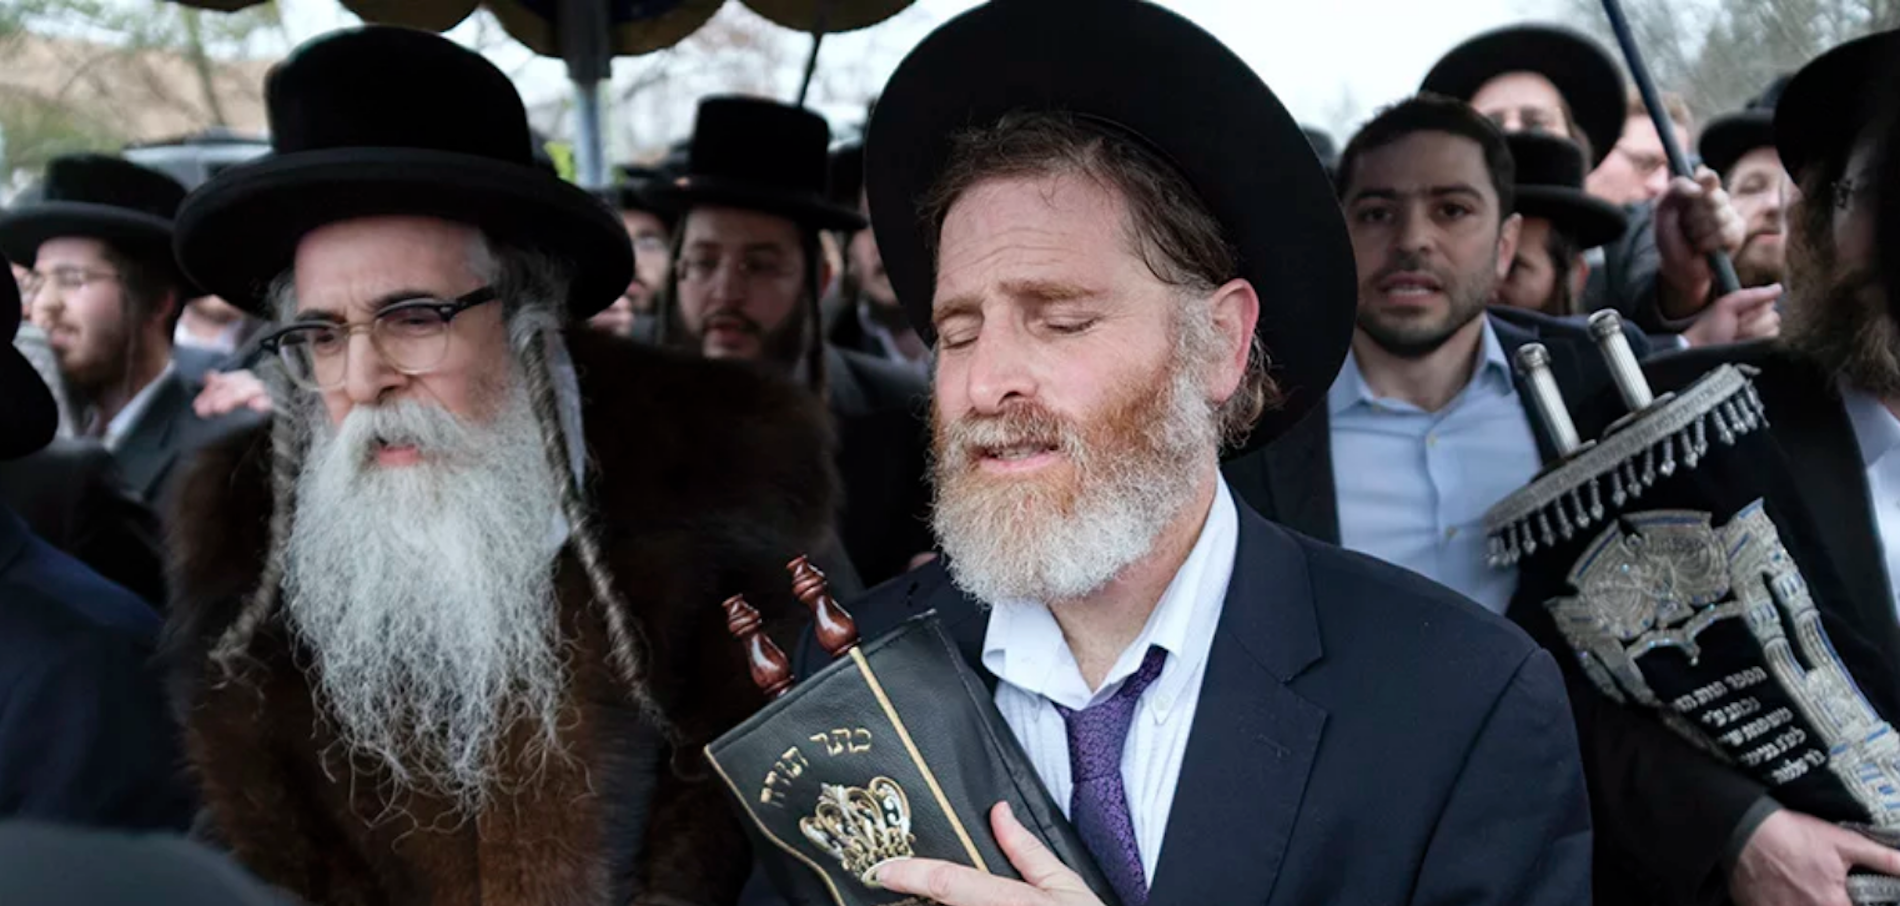 Fighting Antisemitism With Kindness & Other Orthodox Jews in the News